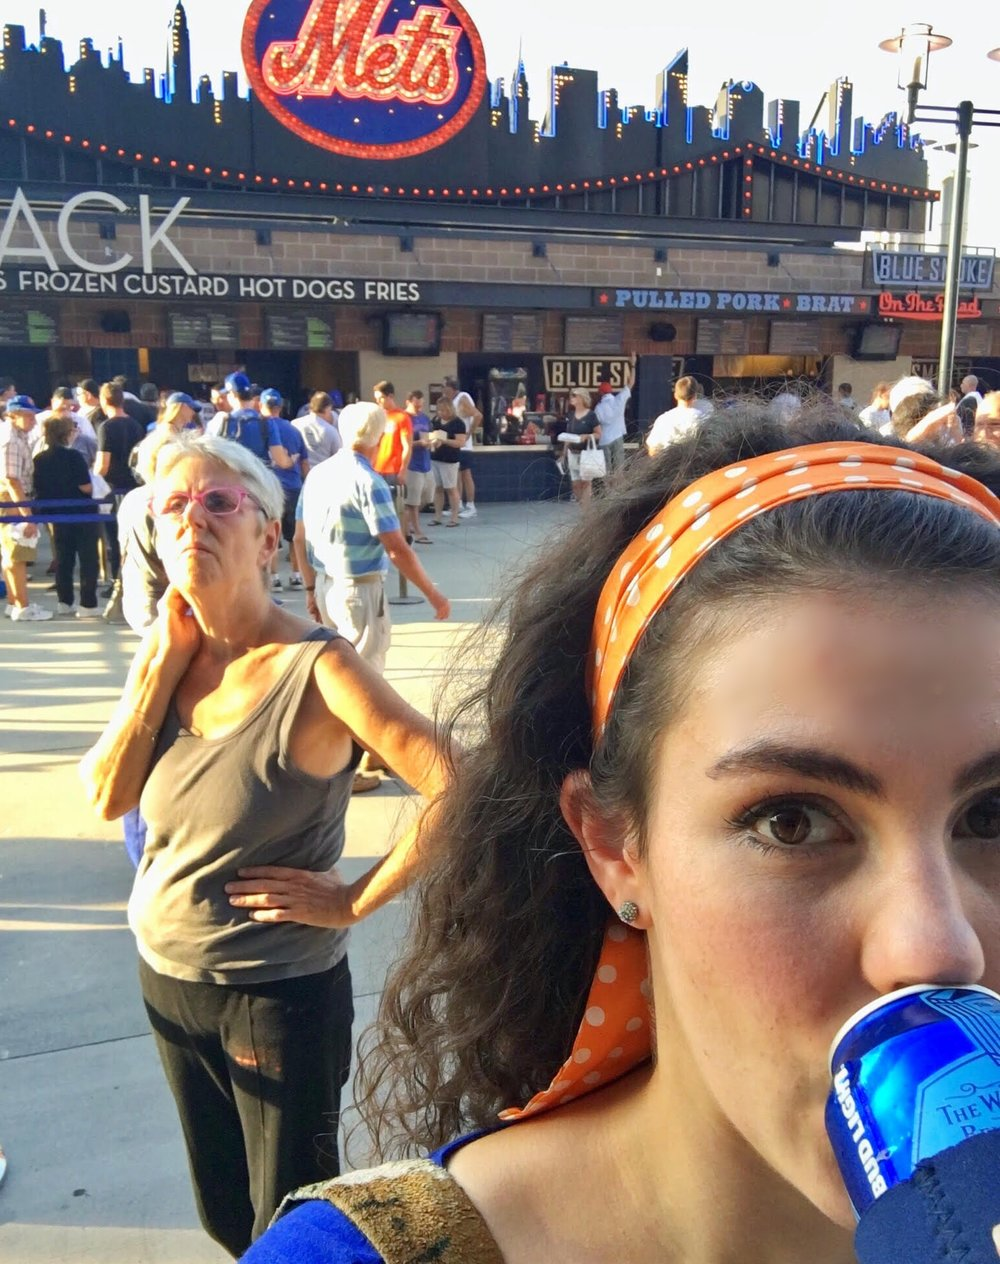 that lady behind me was upset because she wasn't drinking an ice cold bud light.